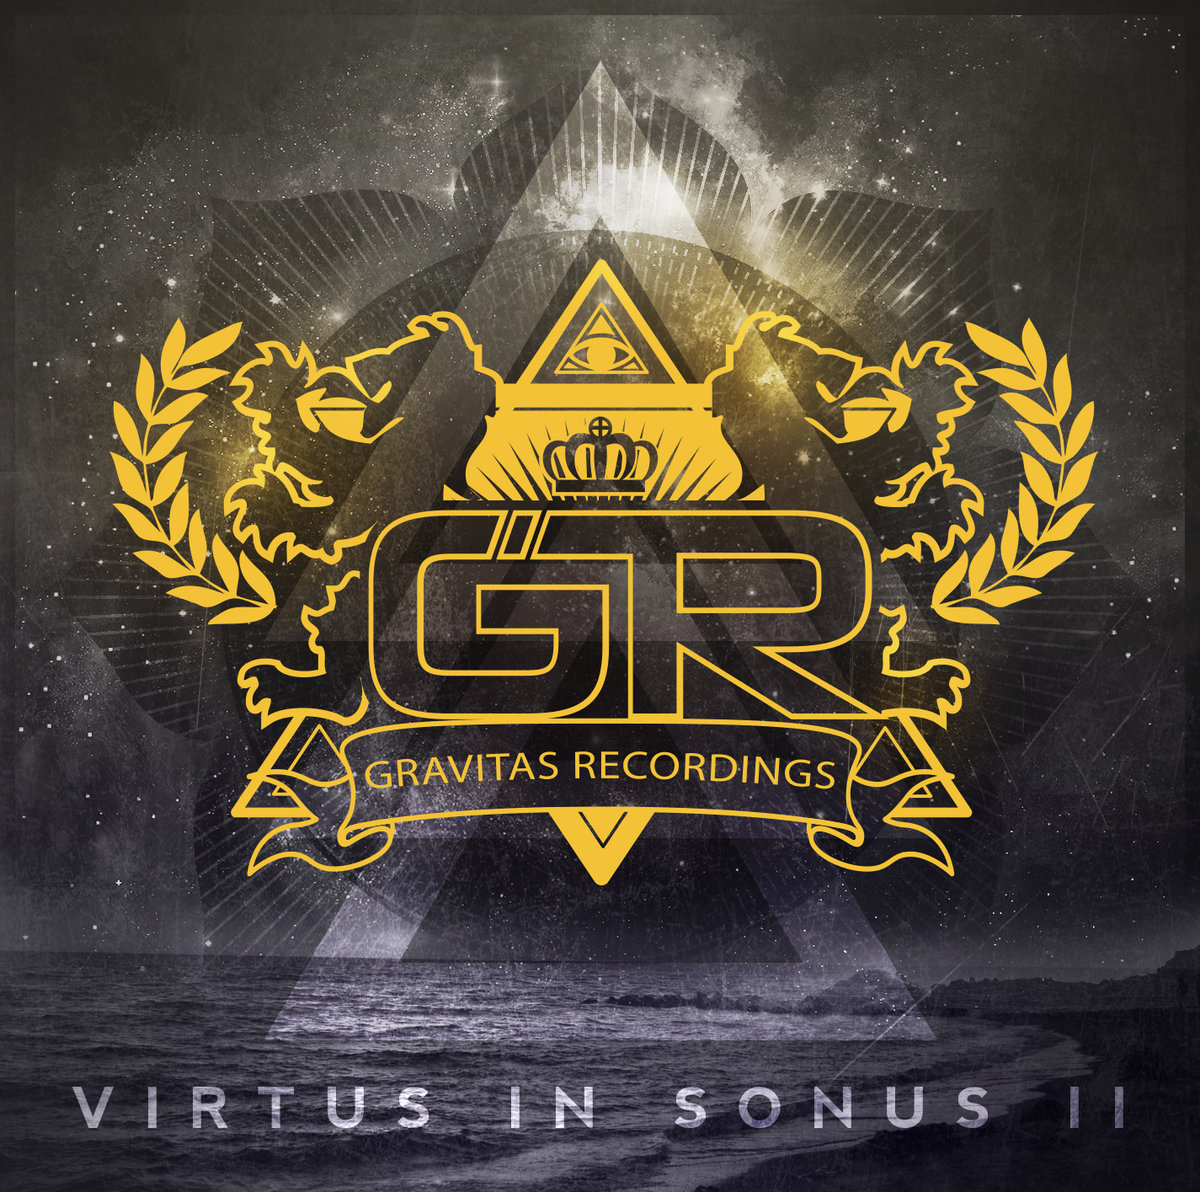 BREDE - Back on Track @ 'Virtus In Sonus II' album (Austin)